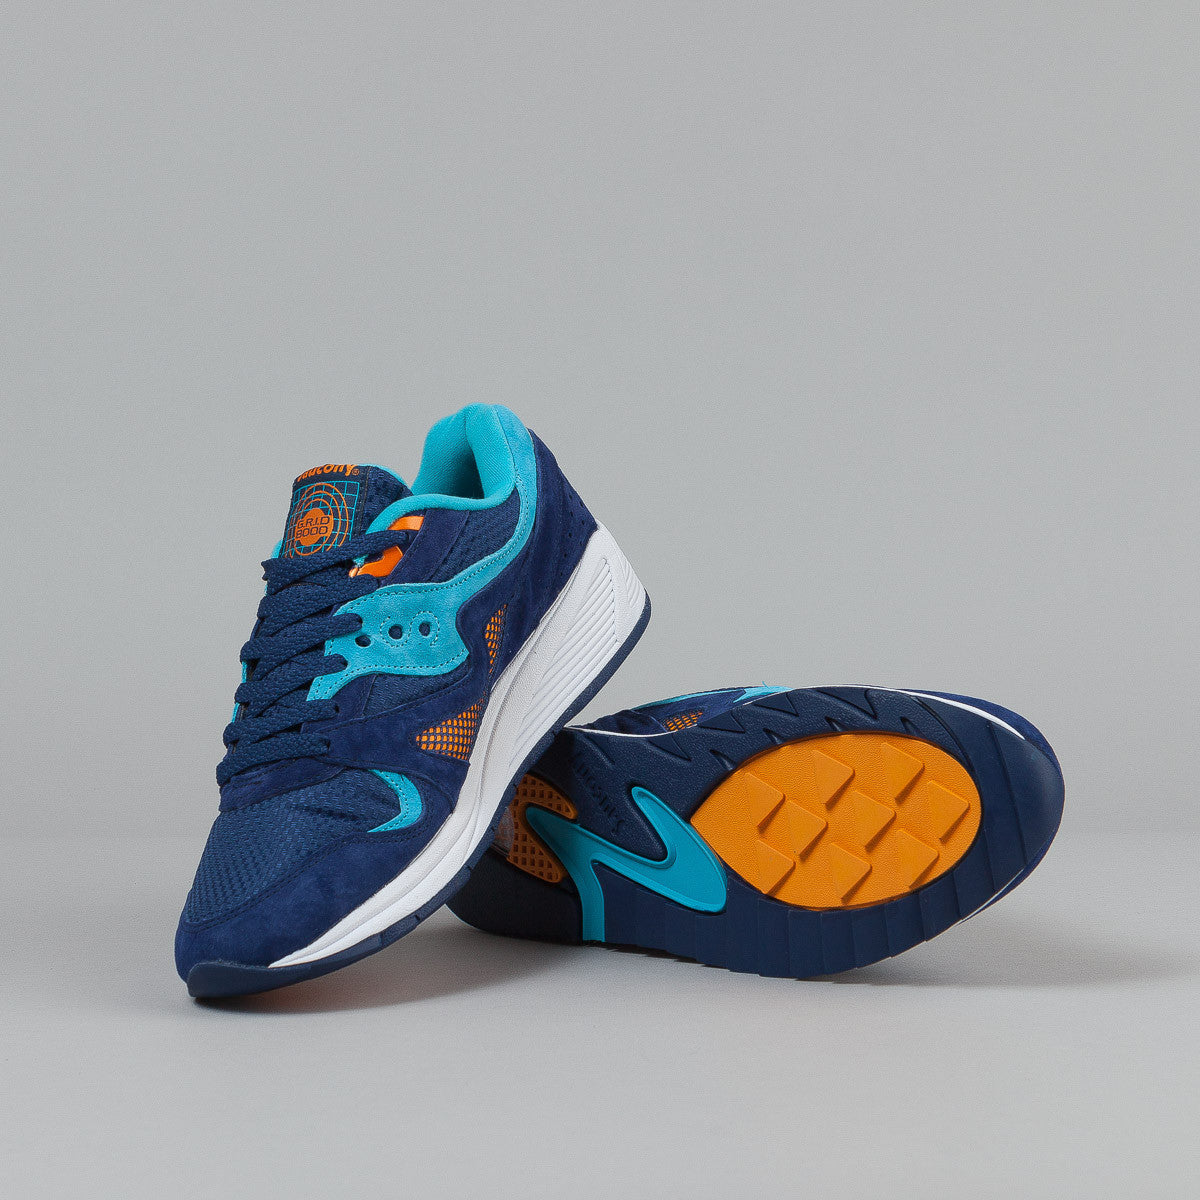 Saucony Grid 8000 CL Shoes - Blue / Light Blue